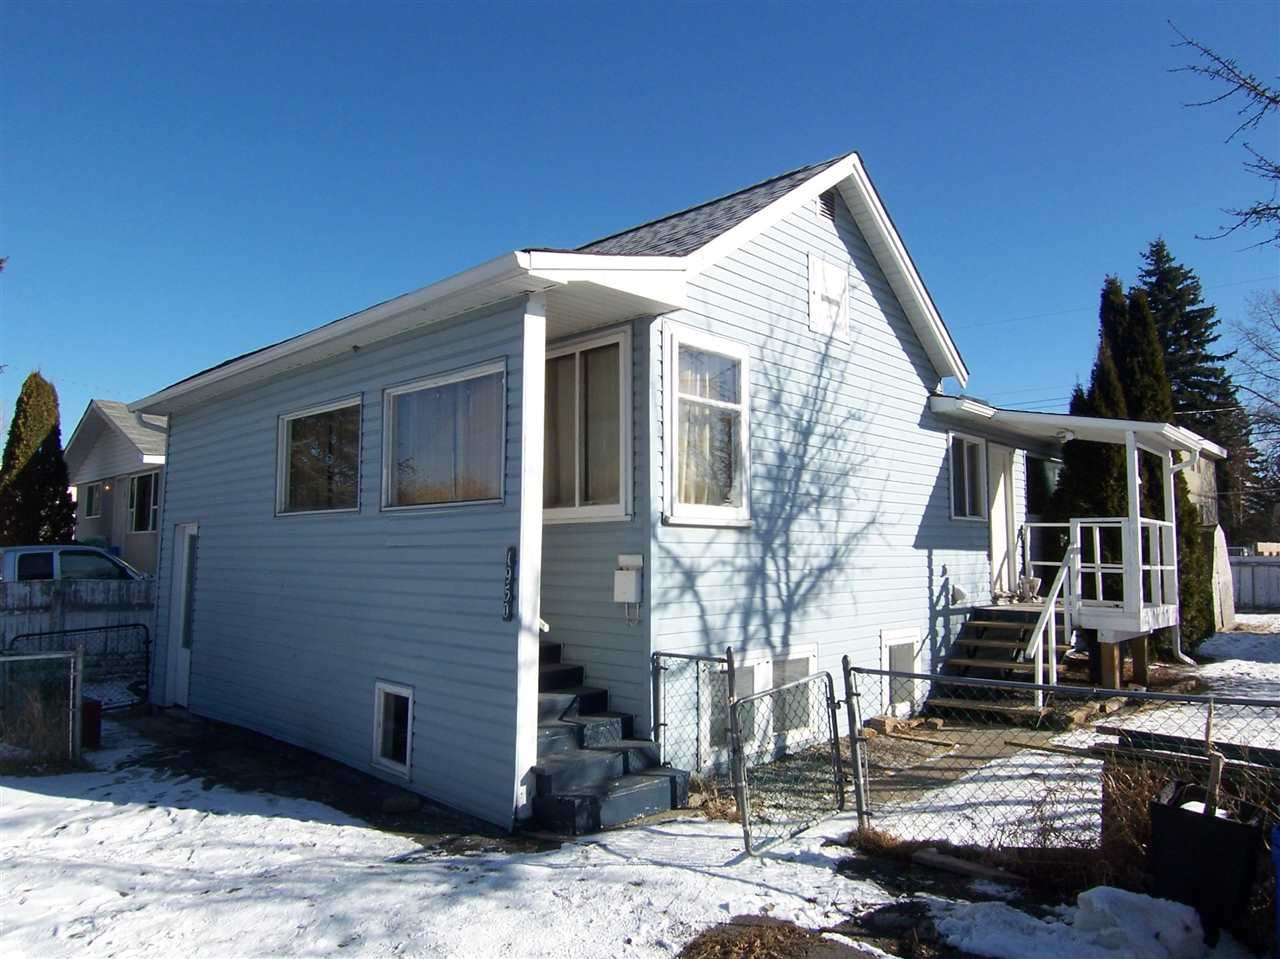 """Main Photo: 1950 VINE Street in Prince George: Van Bow House for sale in """"VAN BOW"""" (PG City Central (Zone 72))  : MLS®# R2143463"""